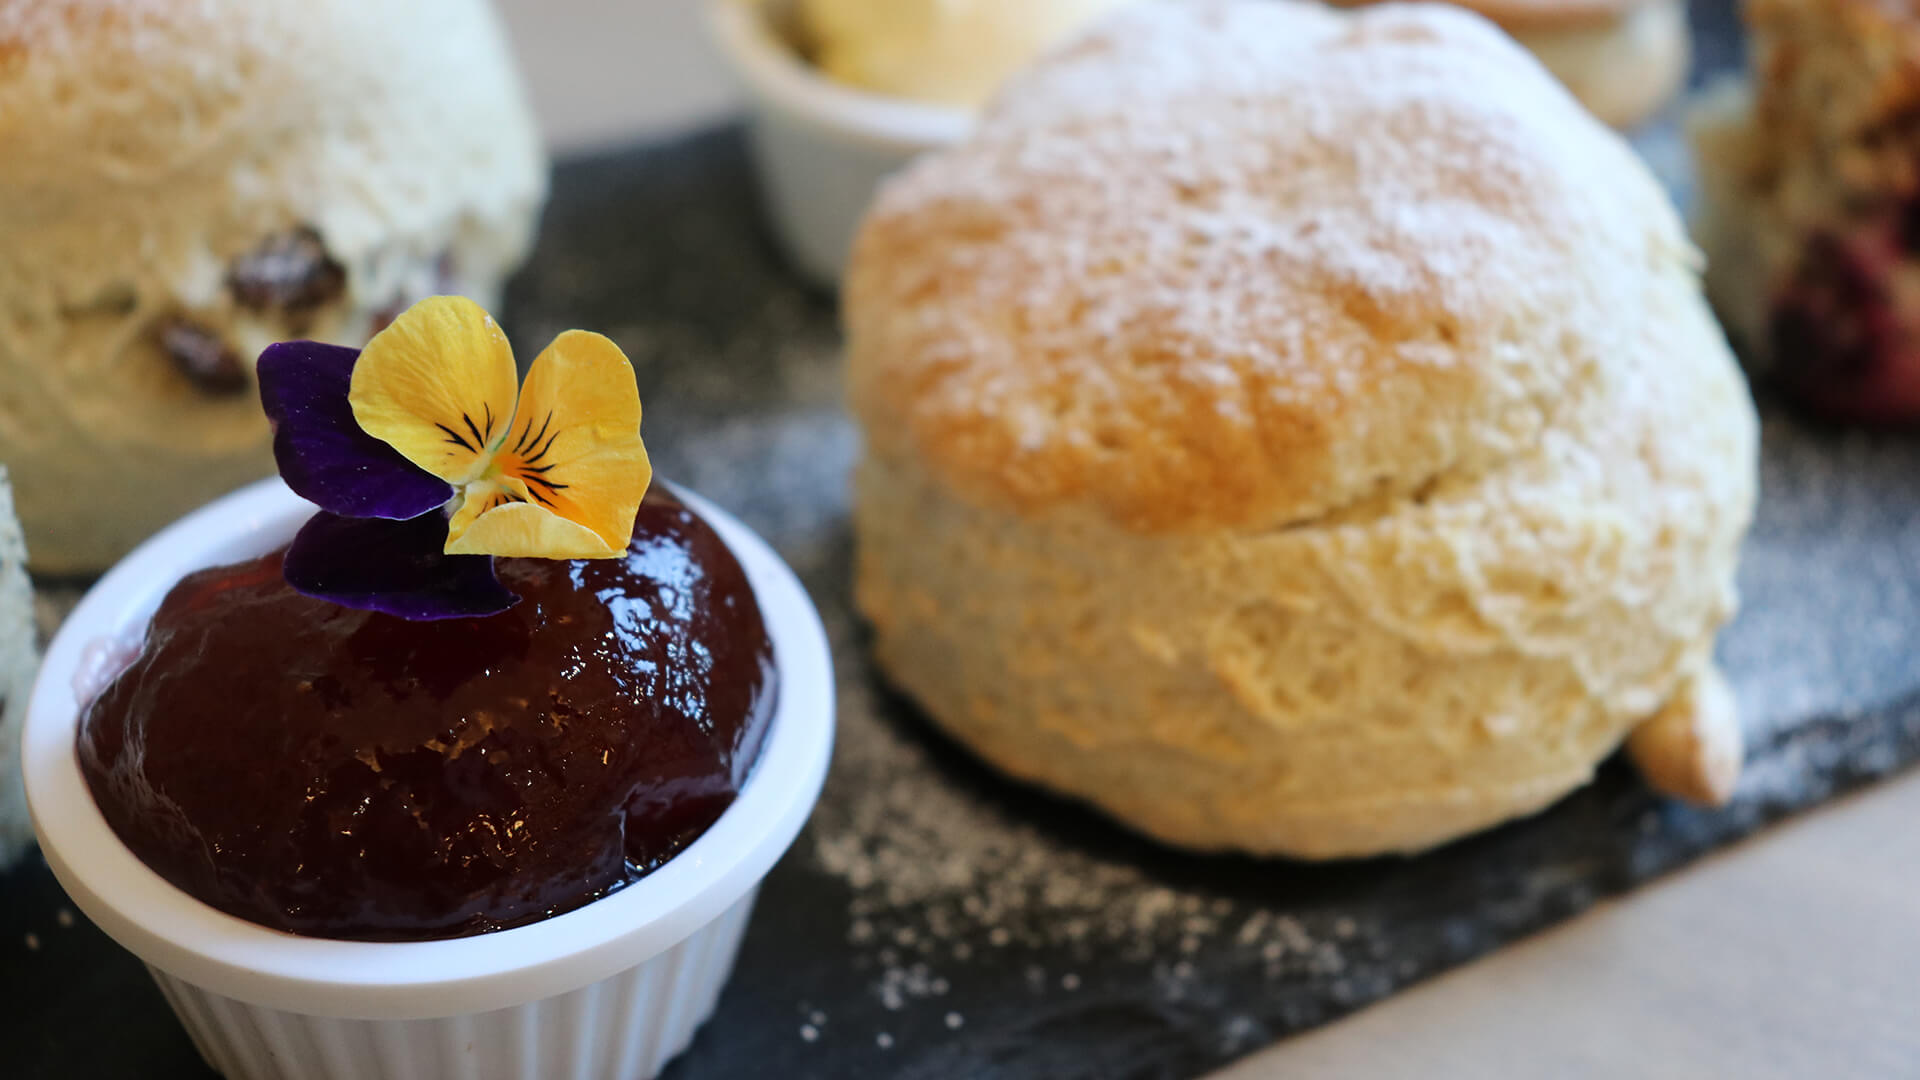 Scone and Jam at The Mulberry Tree